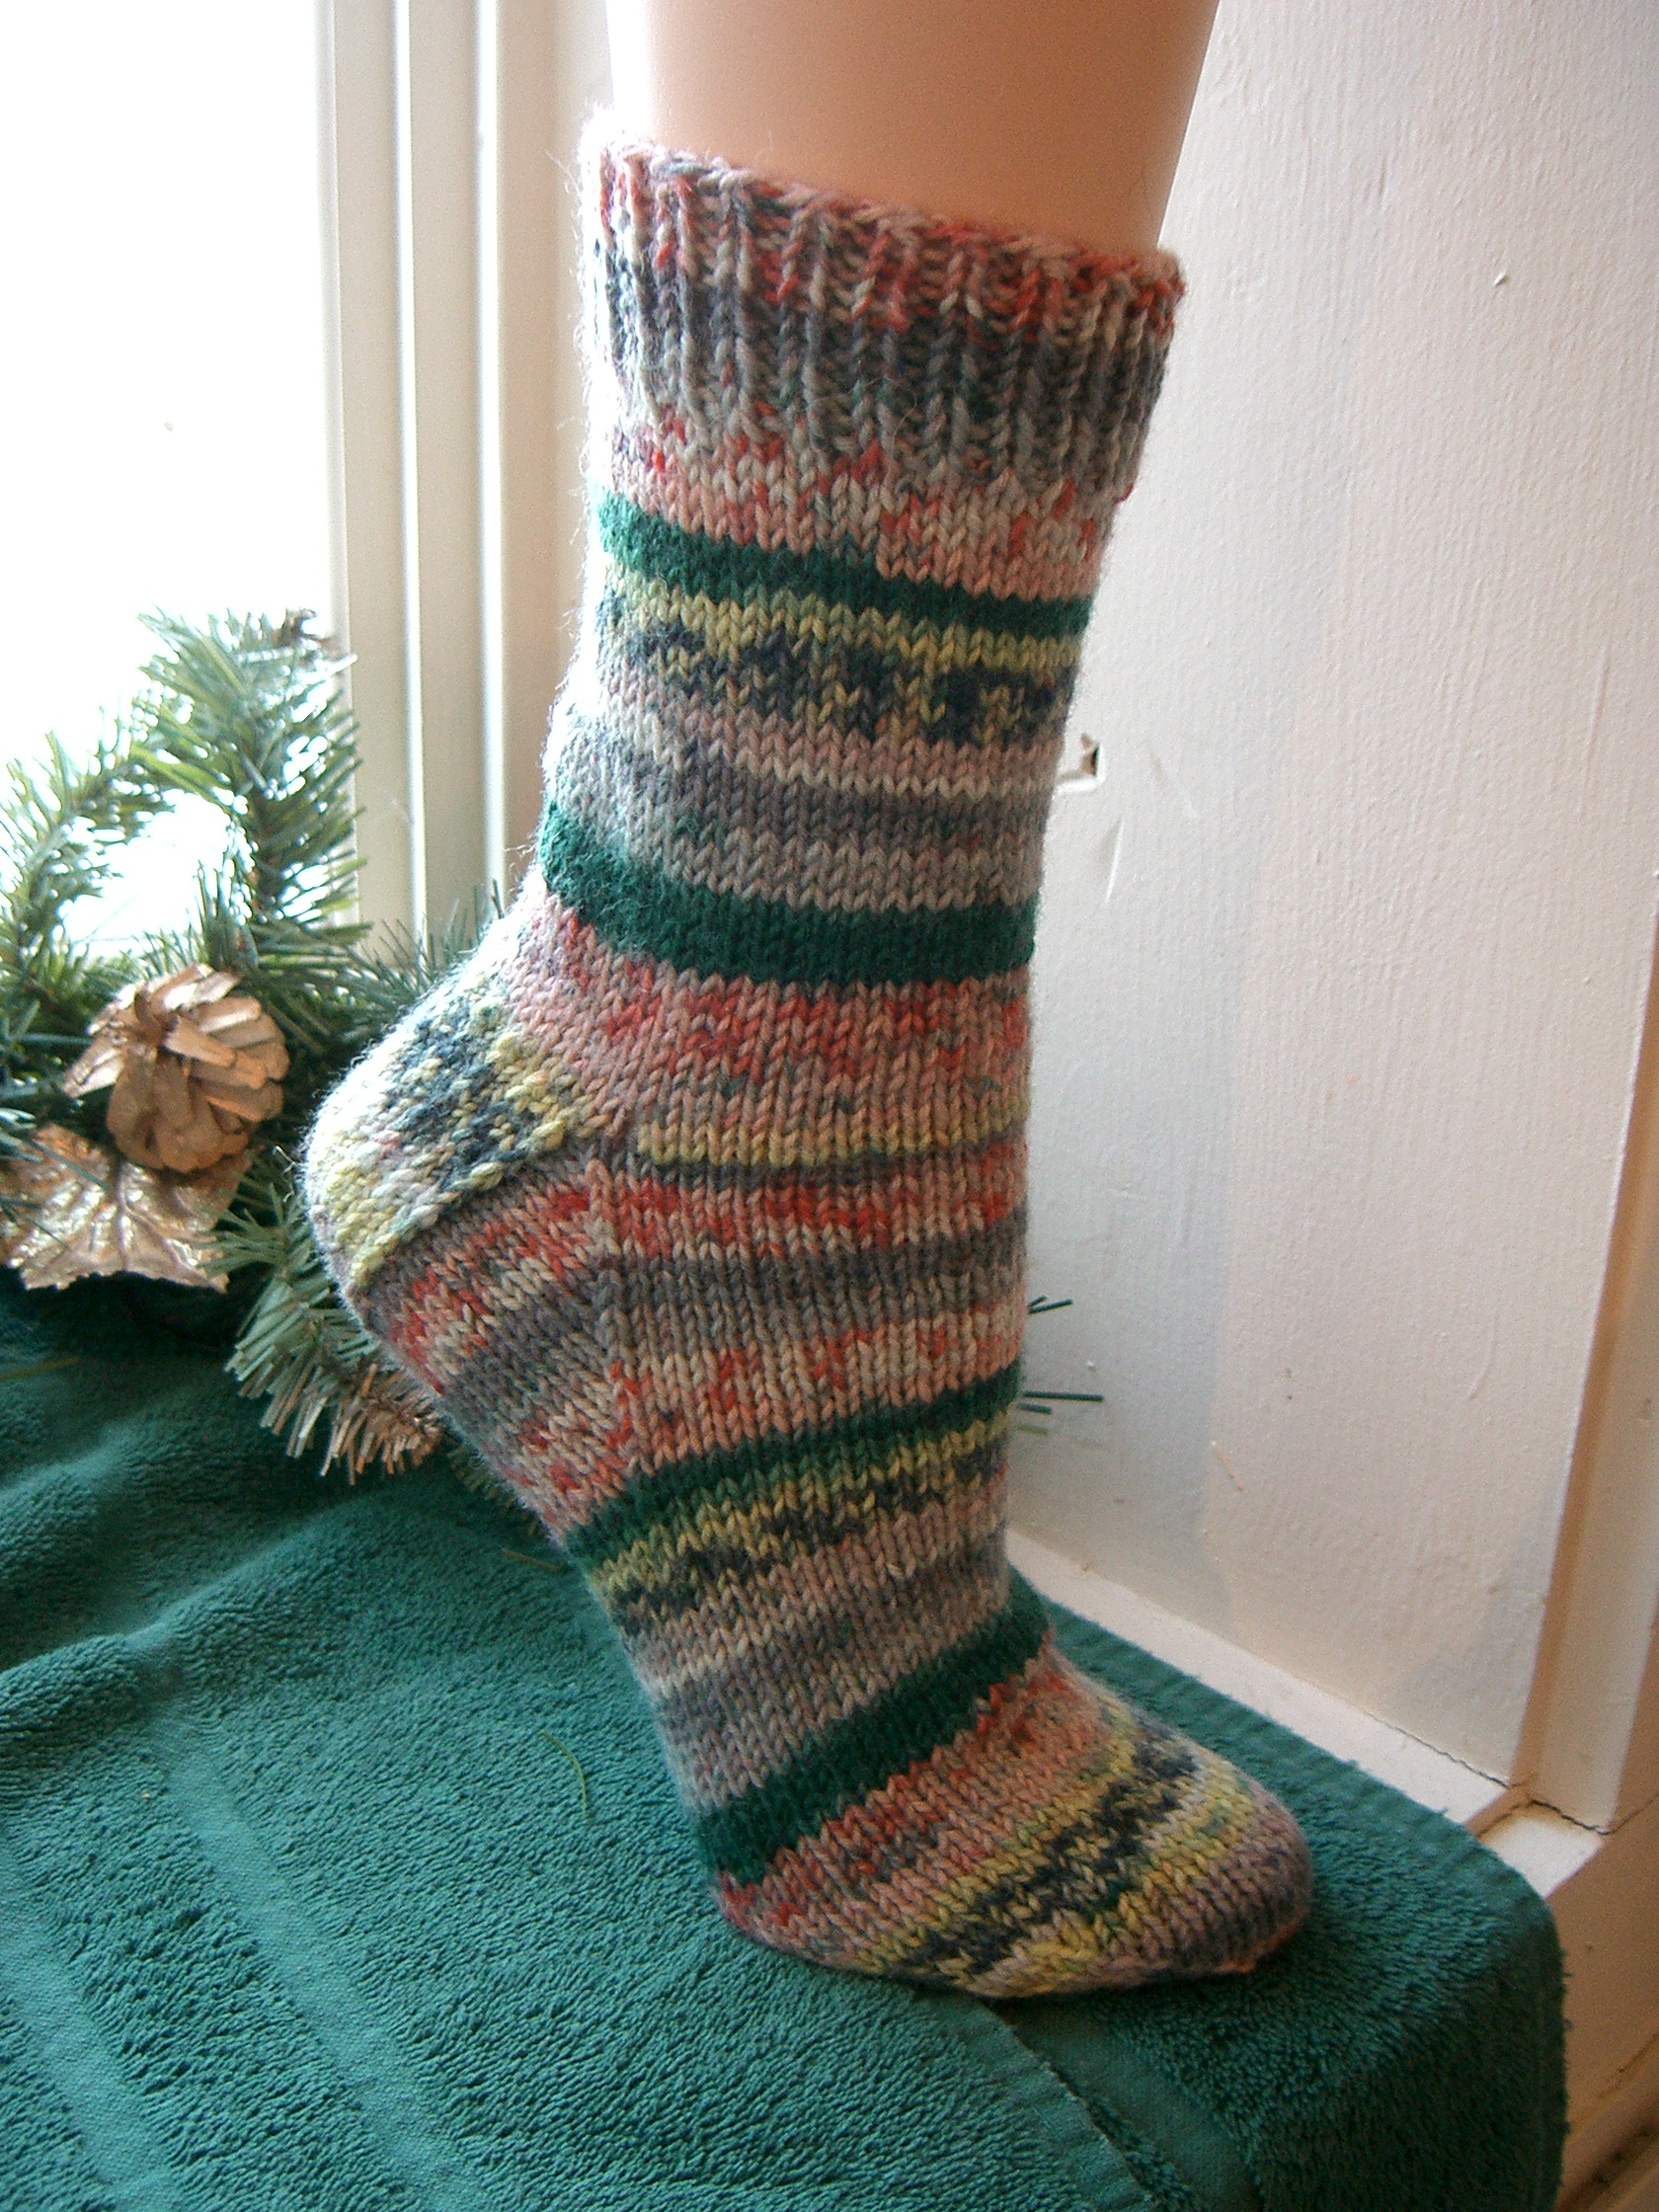 Pattern For Knitting Socks On 9 Inch Circular Needles : DK BOOT SOCKS ON 9? CIRCULAR NEEDLES